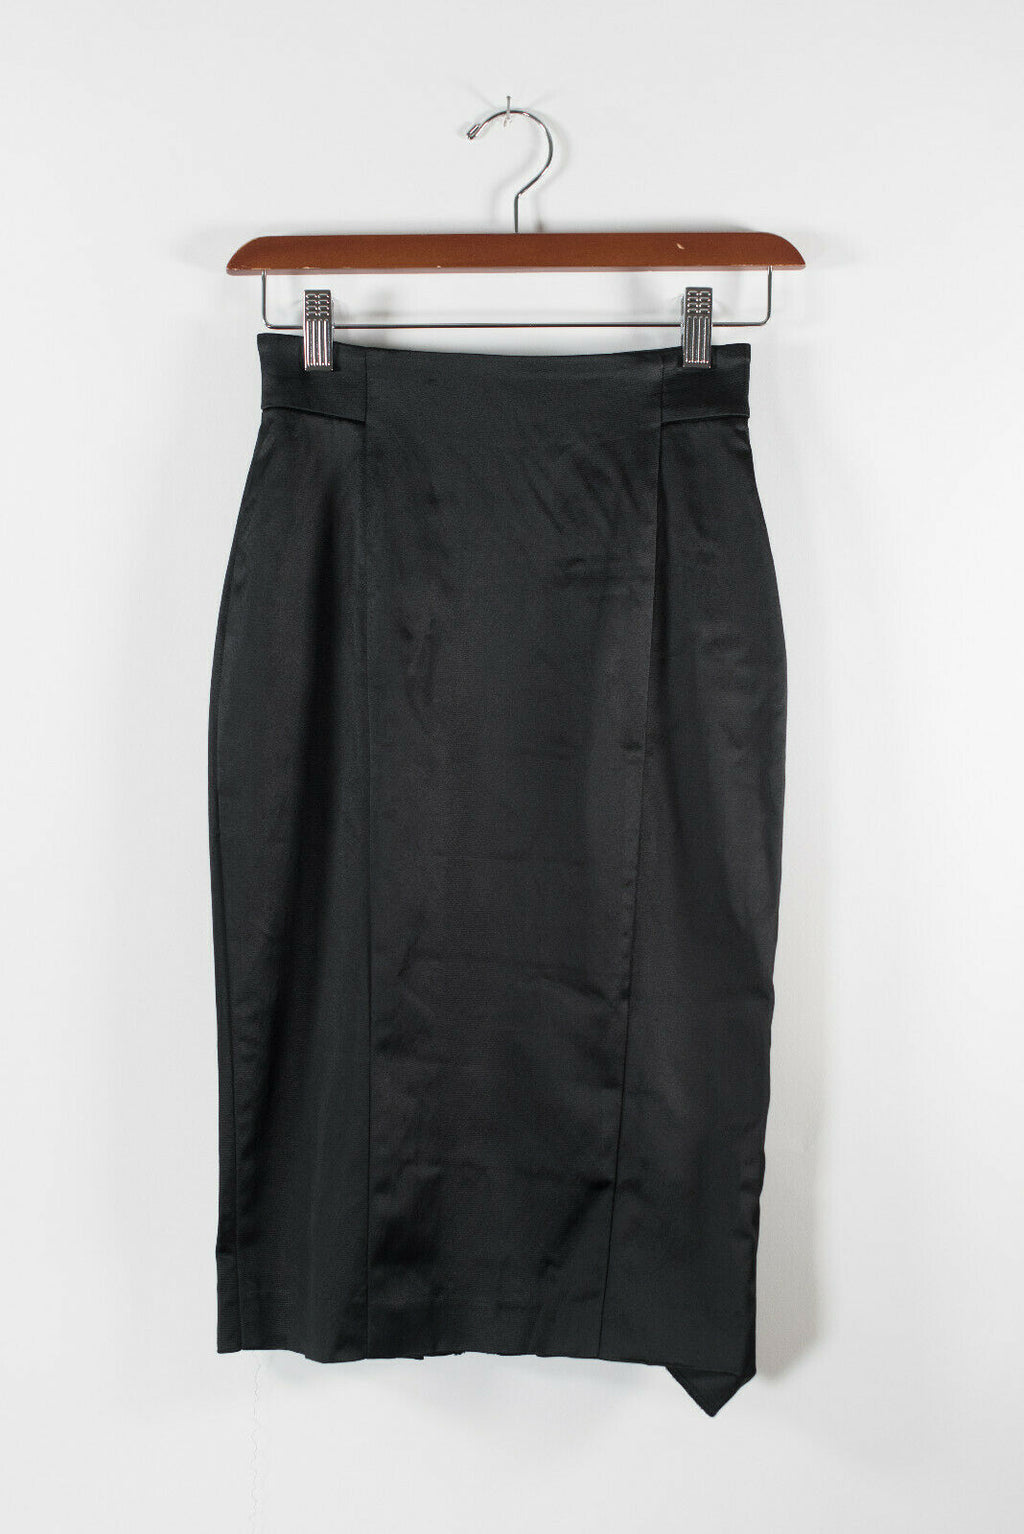 Bebe Womens 00 XXS Black Pencil Skirt Satin High Waisted Button Back Zip Mini